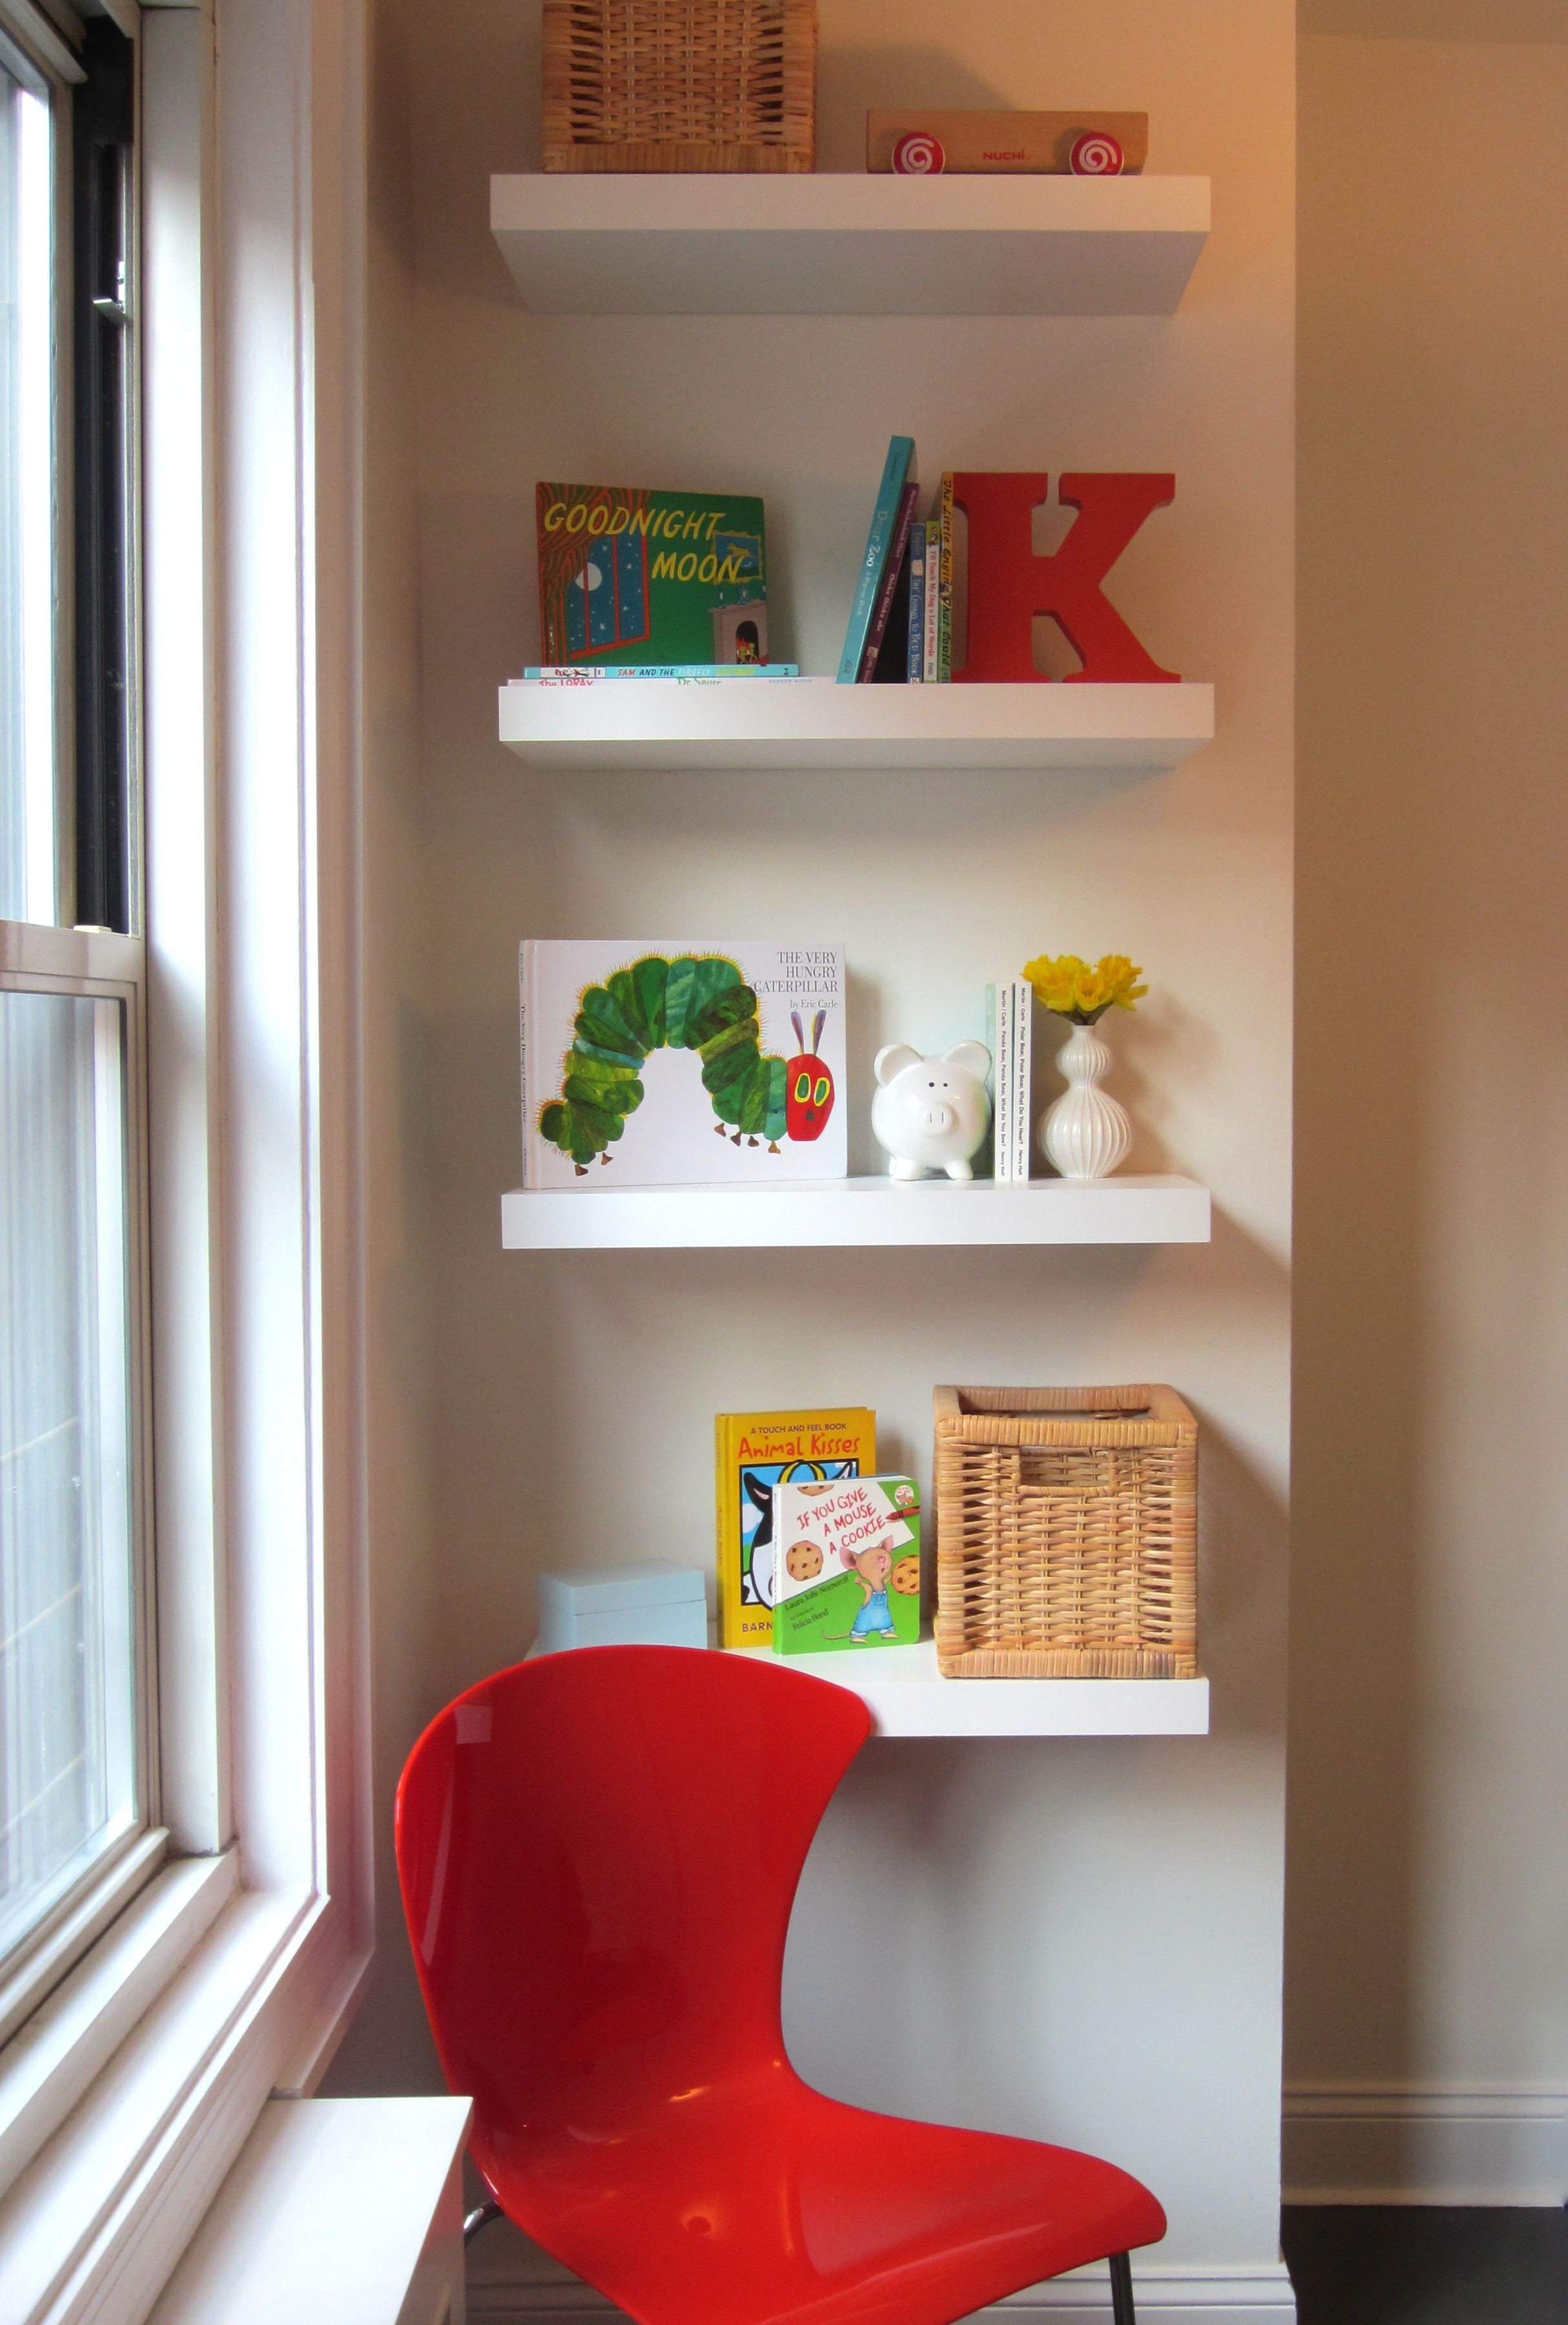 Floating Shelves And An Italian Chair Make A Colorful Splash In A